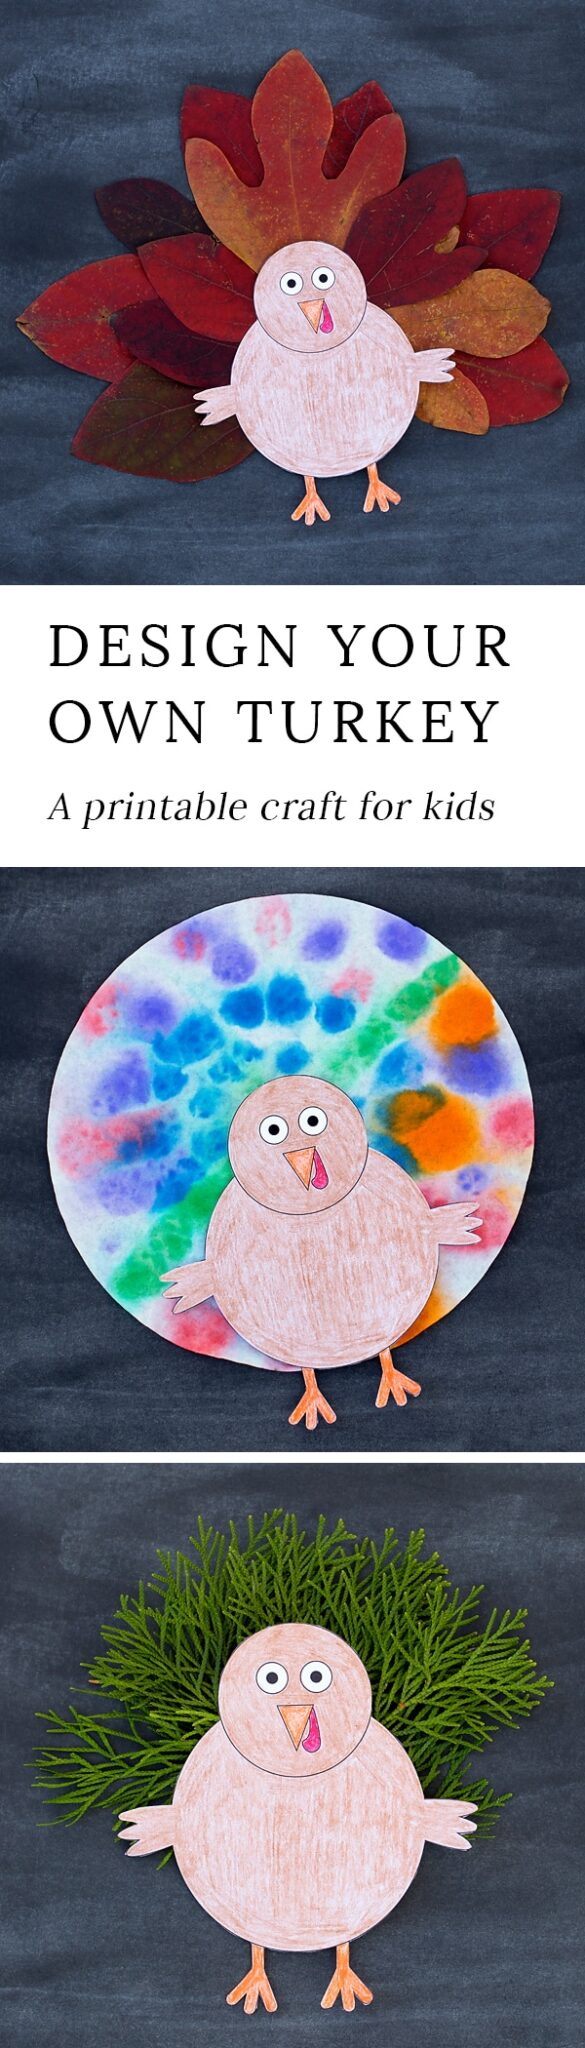 Kids love this creative Design Your Own Thanksgiving Turkey Craft. This easy craft includes a printable template, making it perfect for home or school. #thanksgivingturkeycraft #turkeycraft #thanksgiving #naturecrafts #printablecrafts #preschoolcraftsforkids